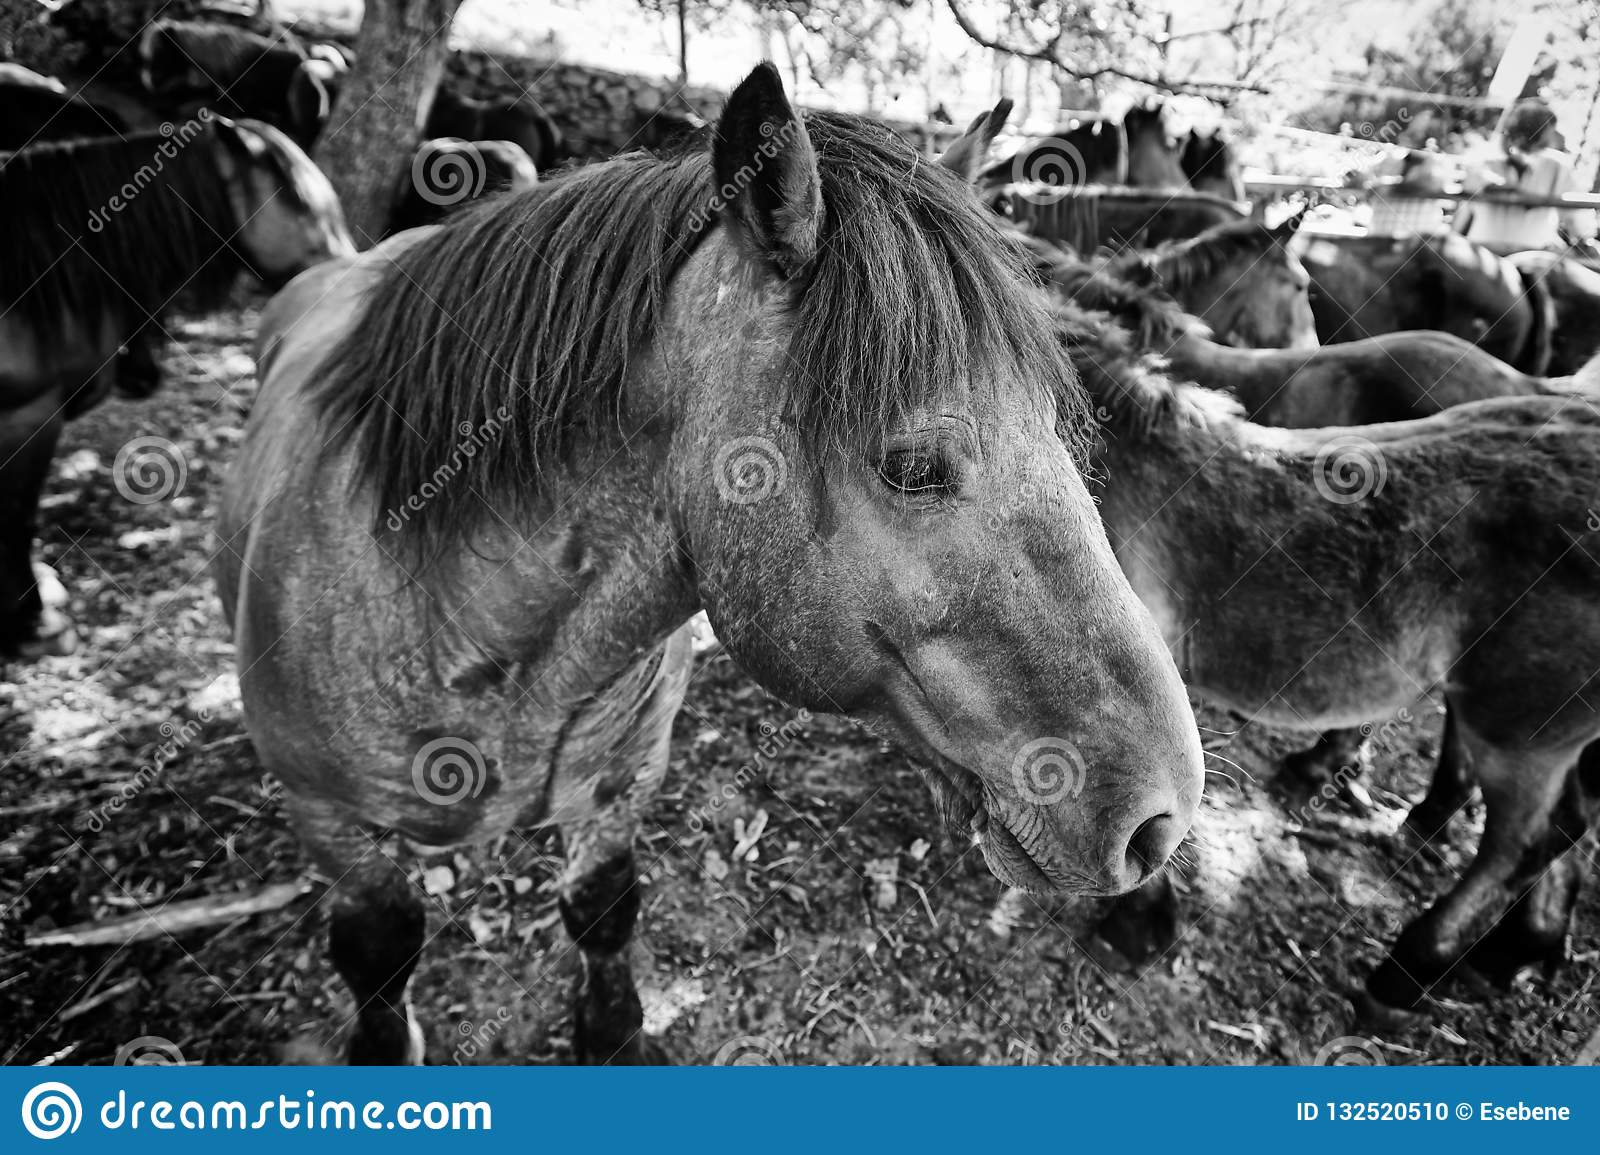 Image of: Spanish Flashcards Wild Horse Detail Of Wild Mammal In The Wild Animal Farm Strength And Nature Dreamstime Spanish Horse Stock Photo Image Of Black Field Beast 132520510